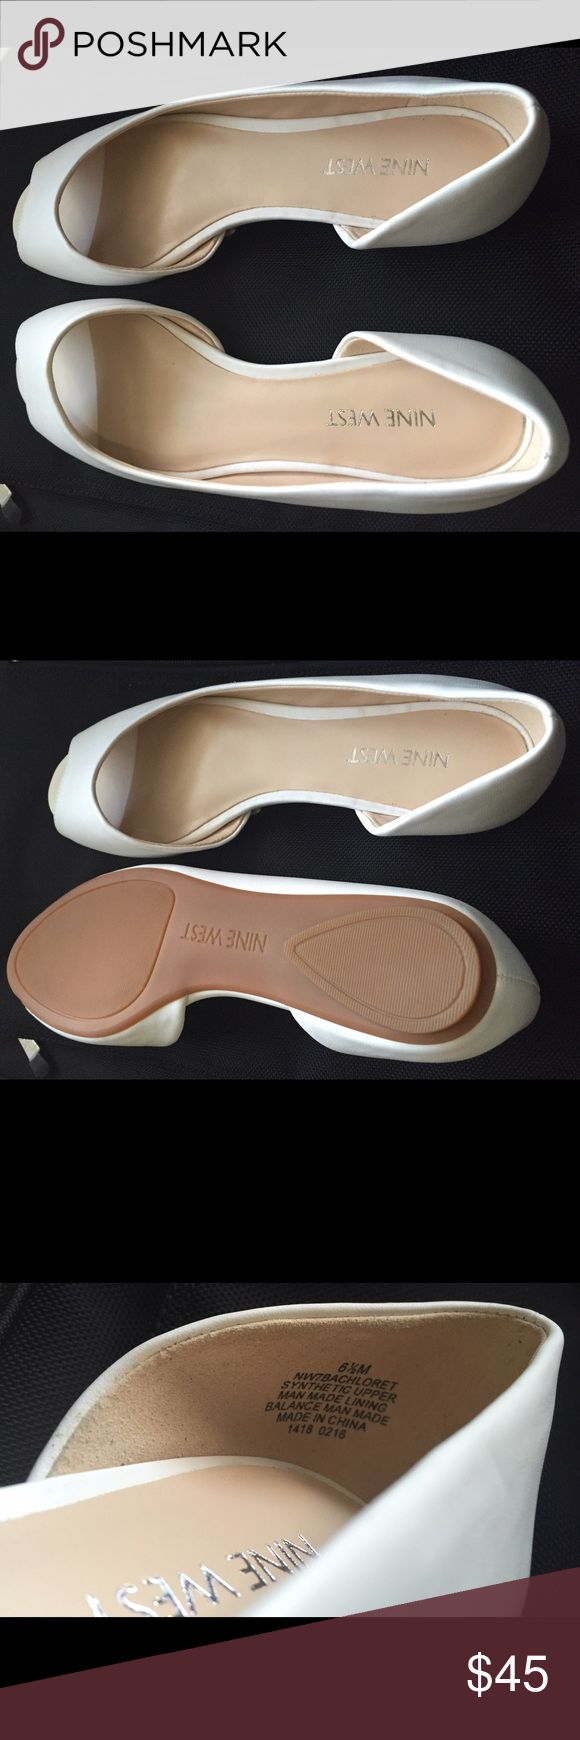 Nine West Women's Ballet Flat (US Size 6.5) condition: New Brand: Nine West Fastening: Slip On Style: Slides Heel Height: Flat (0 to 1/2 in.) US Shoe Size (Women's): 6.5 Country/Region of Manufacture: China Width: Medium (B, M) Material:Leather Color: White  Leather Imported Synthetic sole Leather upper Synthetic sole Faux leather lining Cushioned footbed  BRAND NEW & AUTHENTIC ITEM!! Nine West Shoes Flats & Loafers